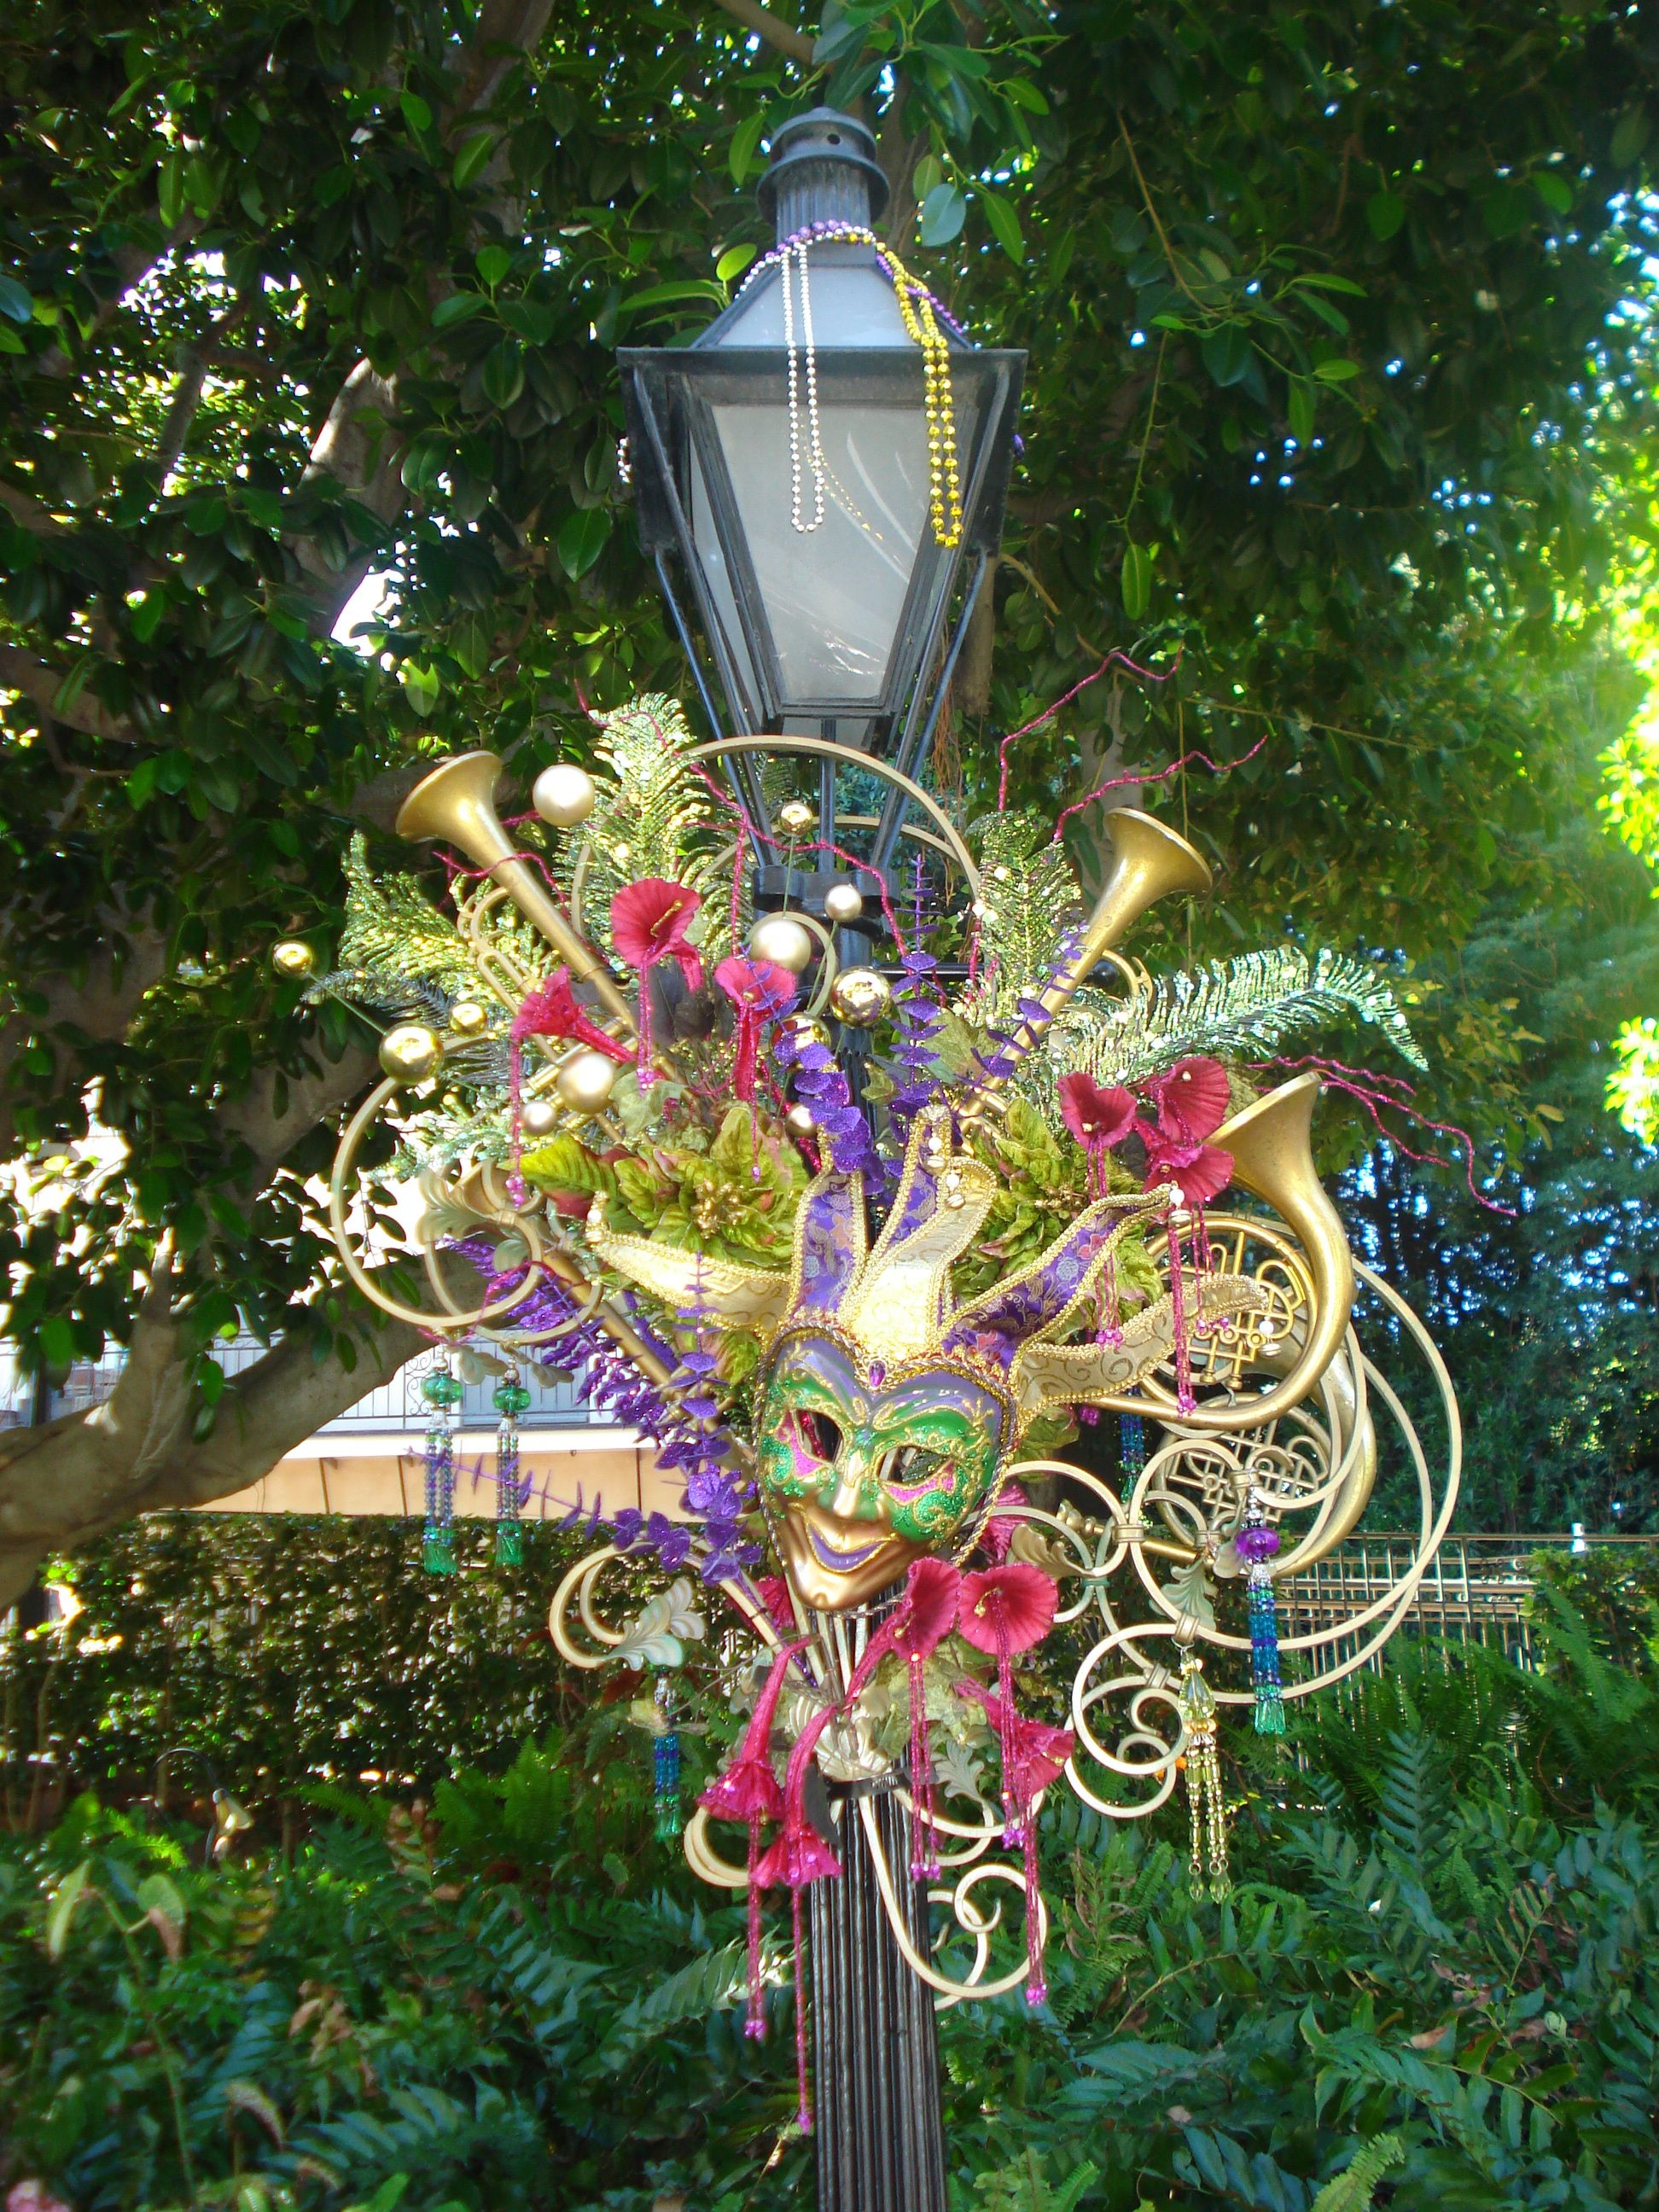 Mardi Gras decoration in New Orleans Square Disneyland